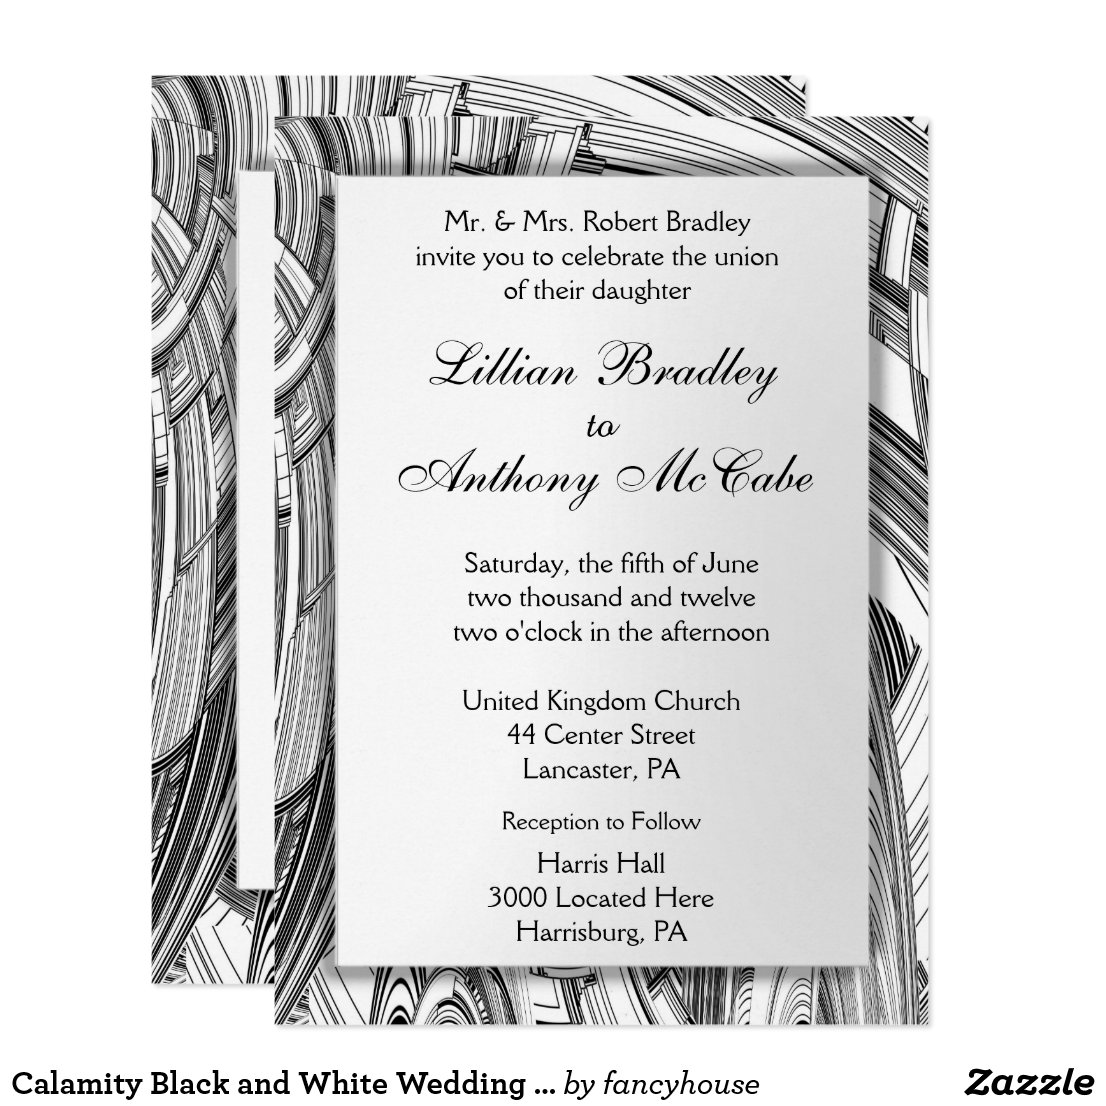 Calamity Black and White Wedding Invitation